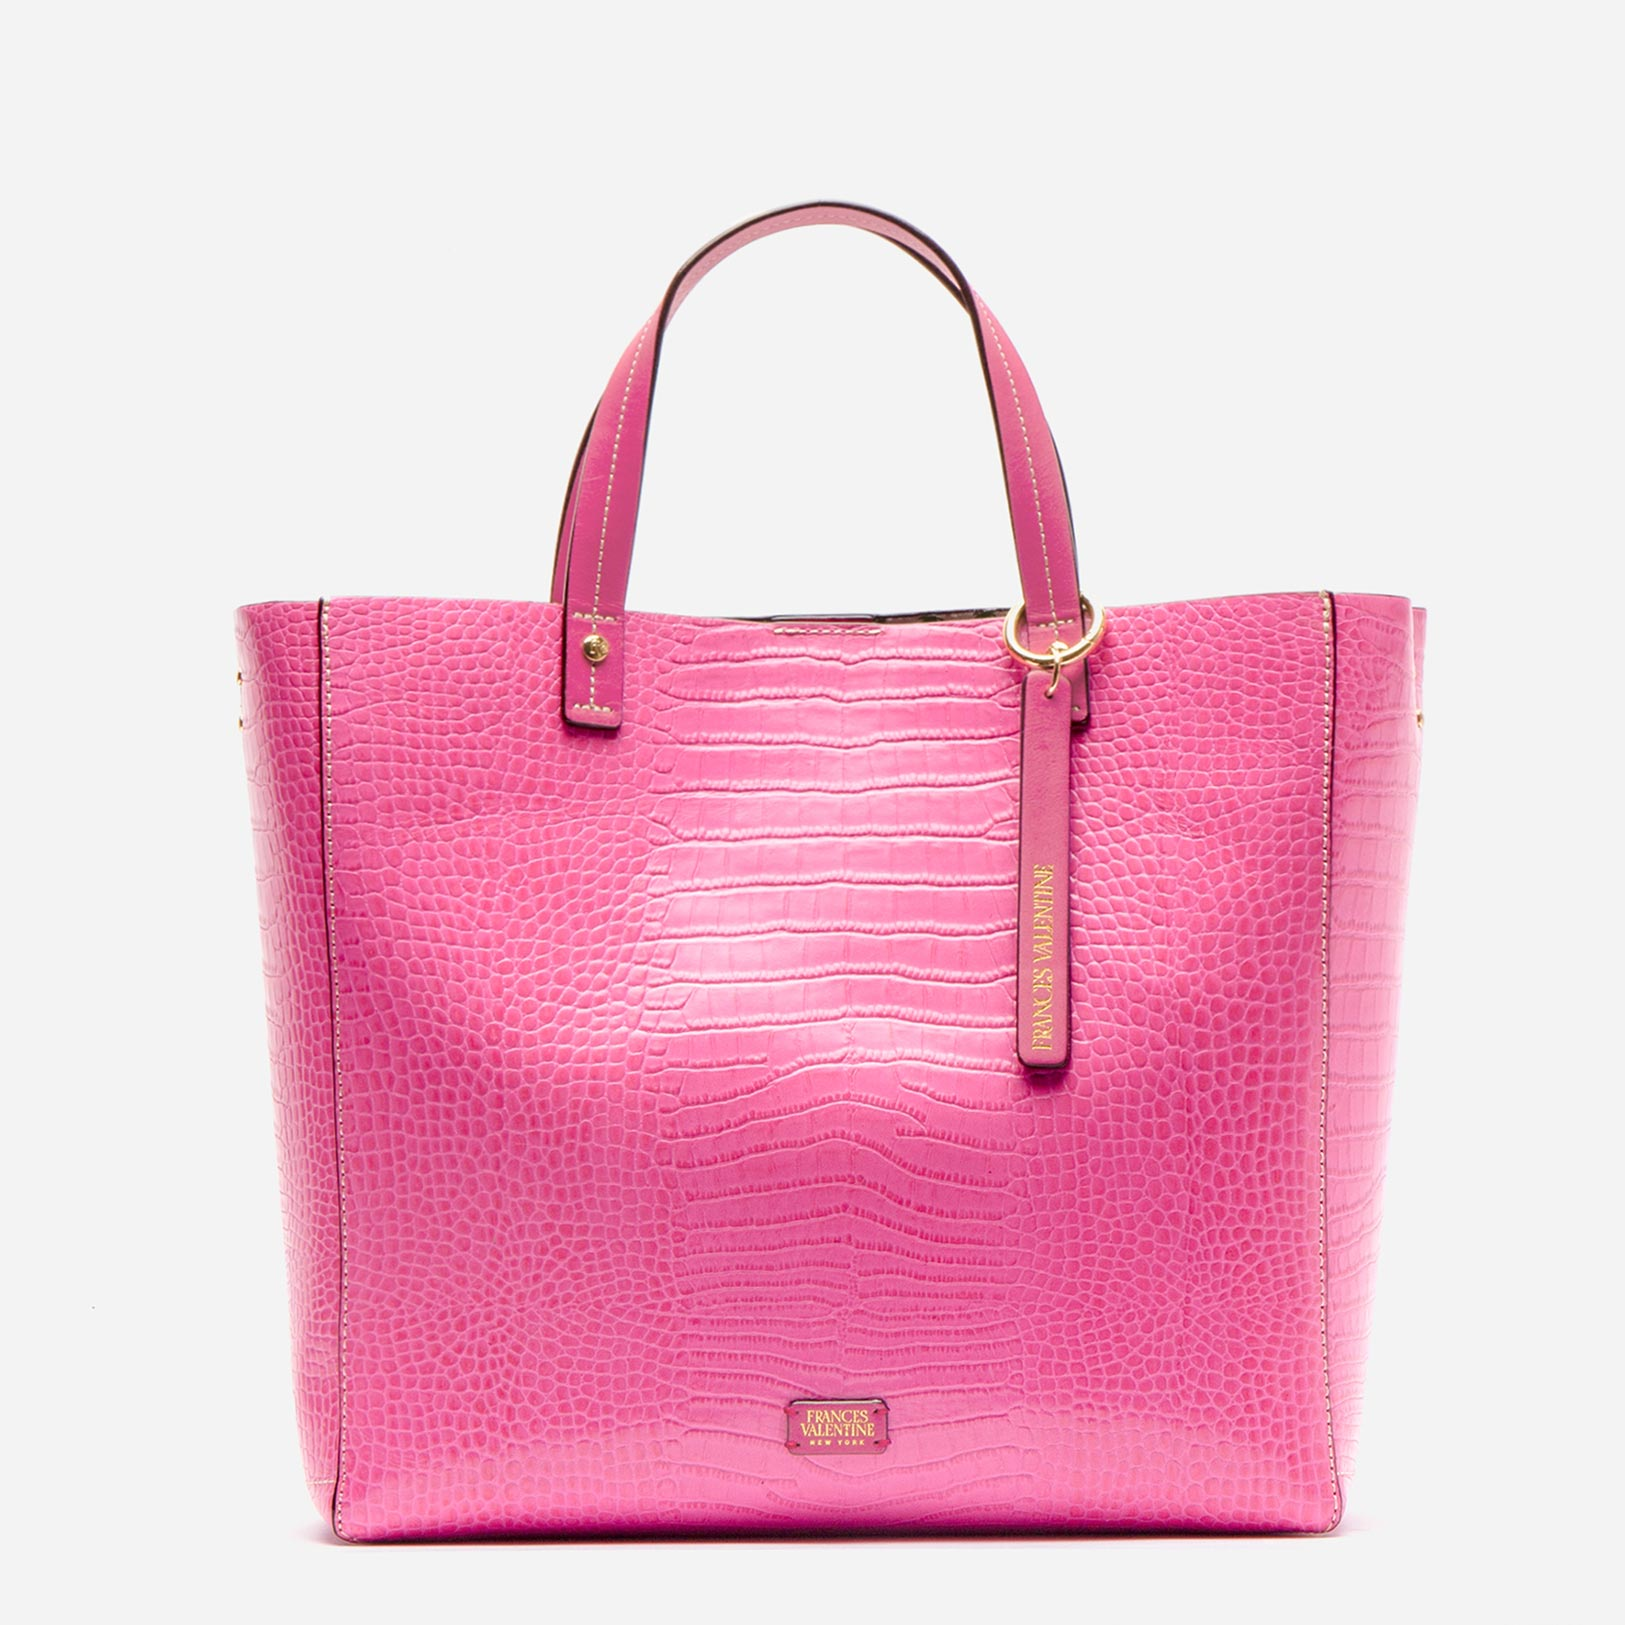 Margaret Tote Croc Embossed Leather Pink - Frances Valentine